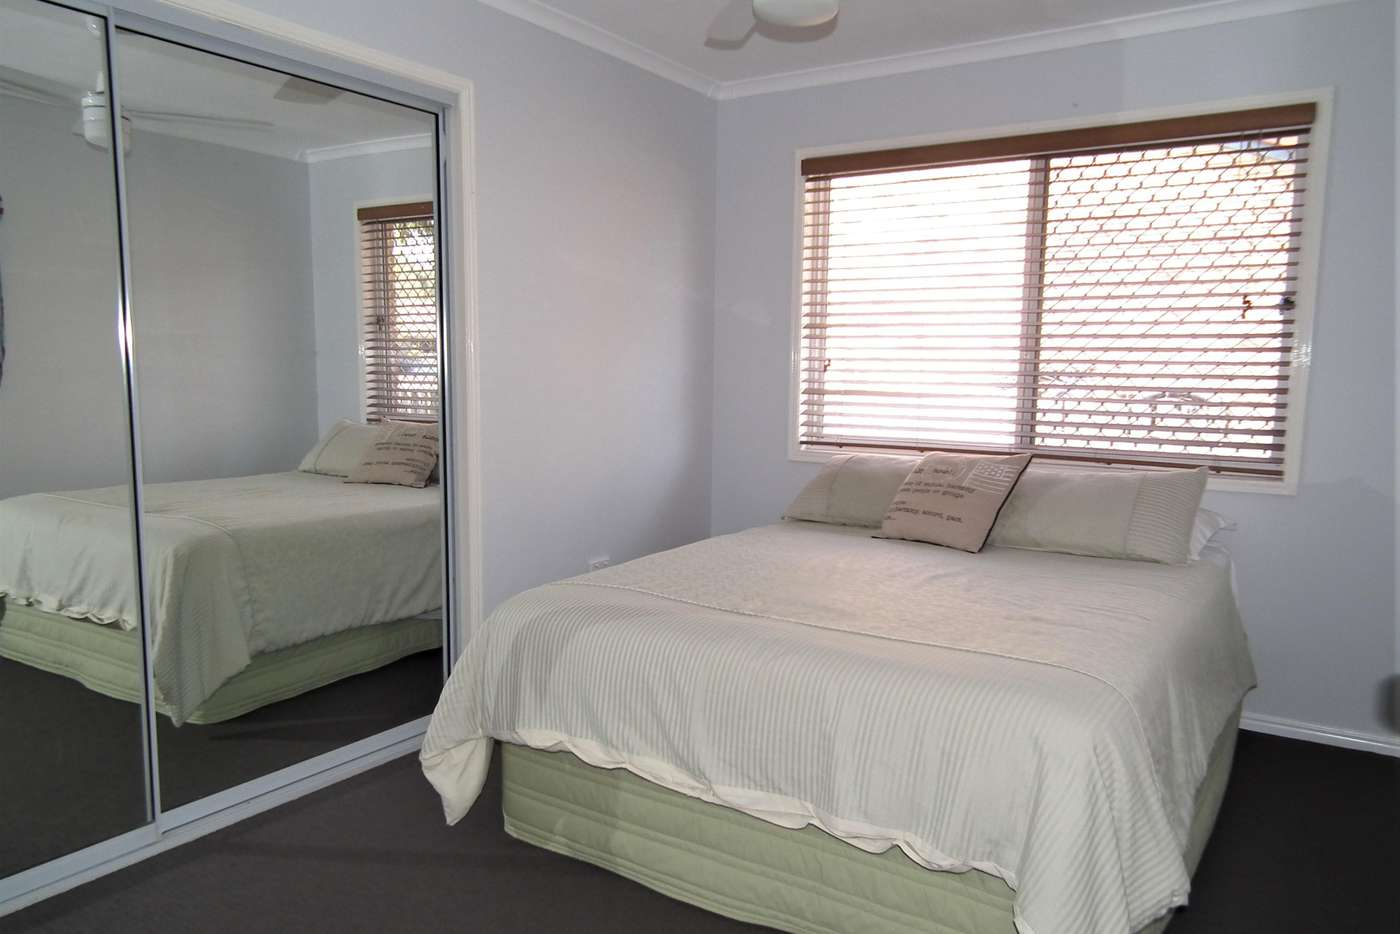 Sixth view of Homely house listing, 45 Honeysuckle Avenue, Kawungan QLD 4655